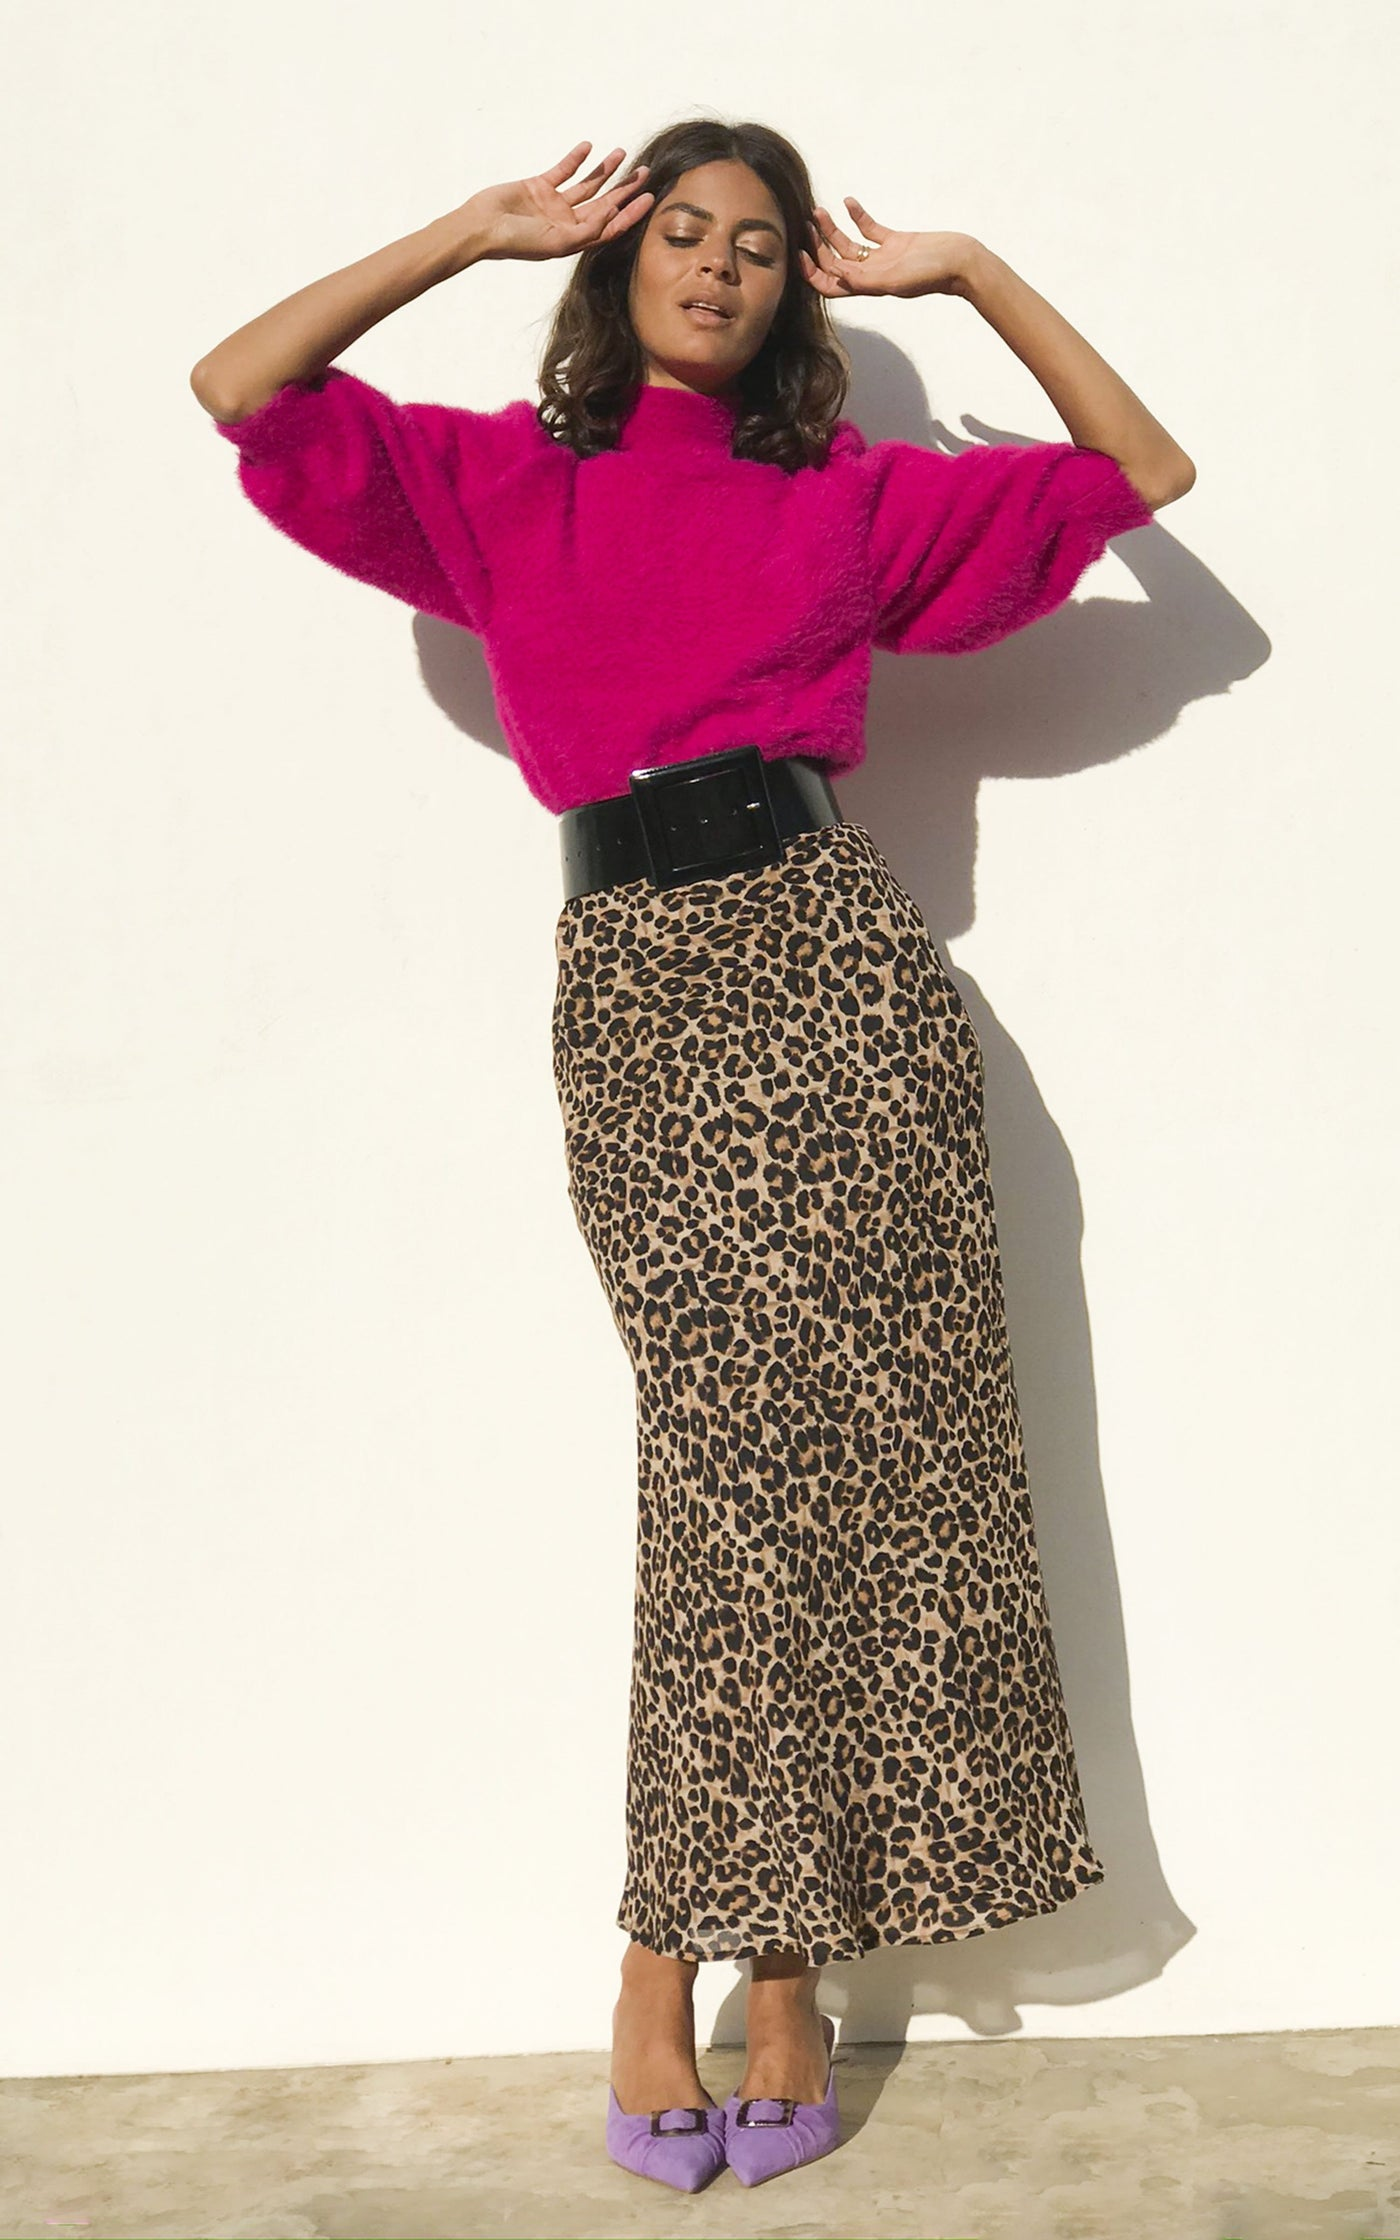 Model wears Dancing Leopard sophie skirt in rich leopard with bright pink jumper and lilac shoes facing forward with hands above her head